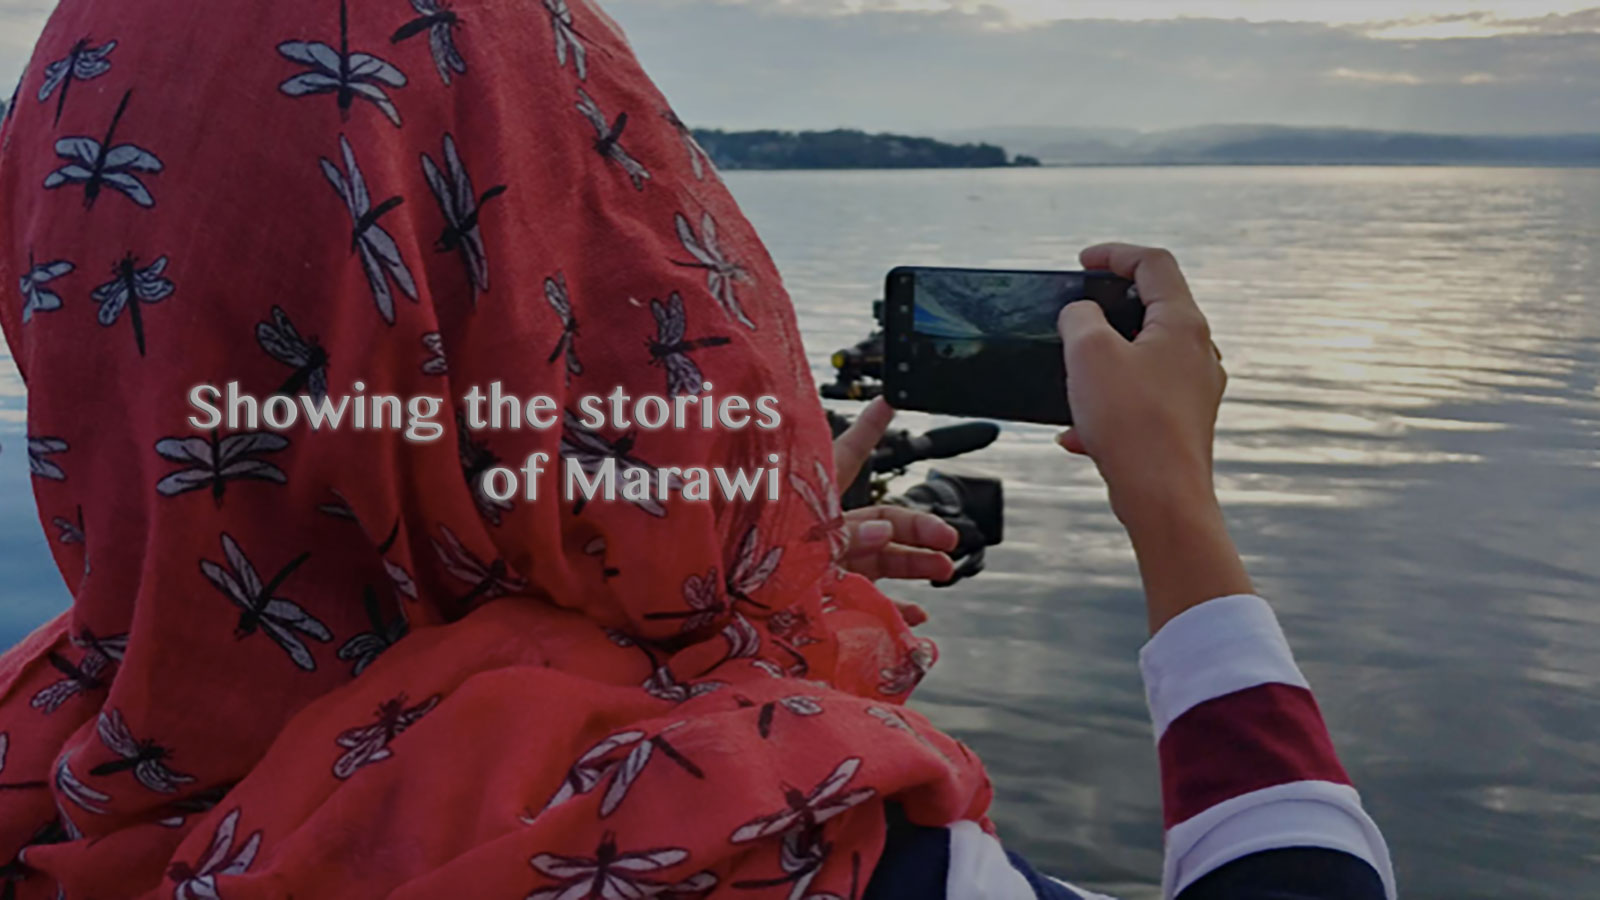 LG V30+ Showing the stories of Marawi